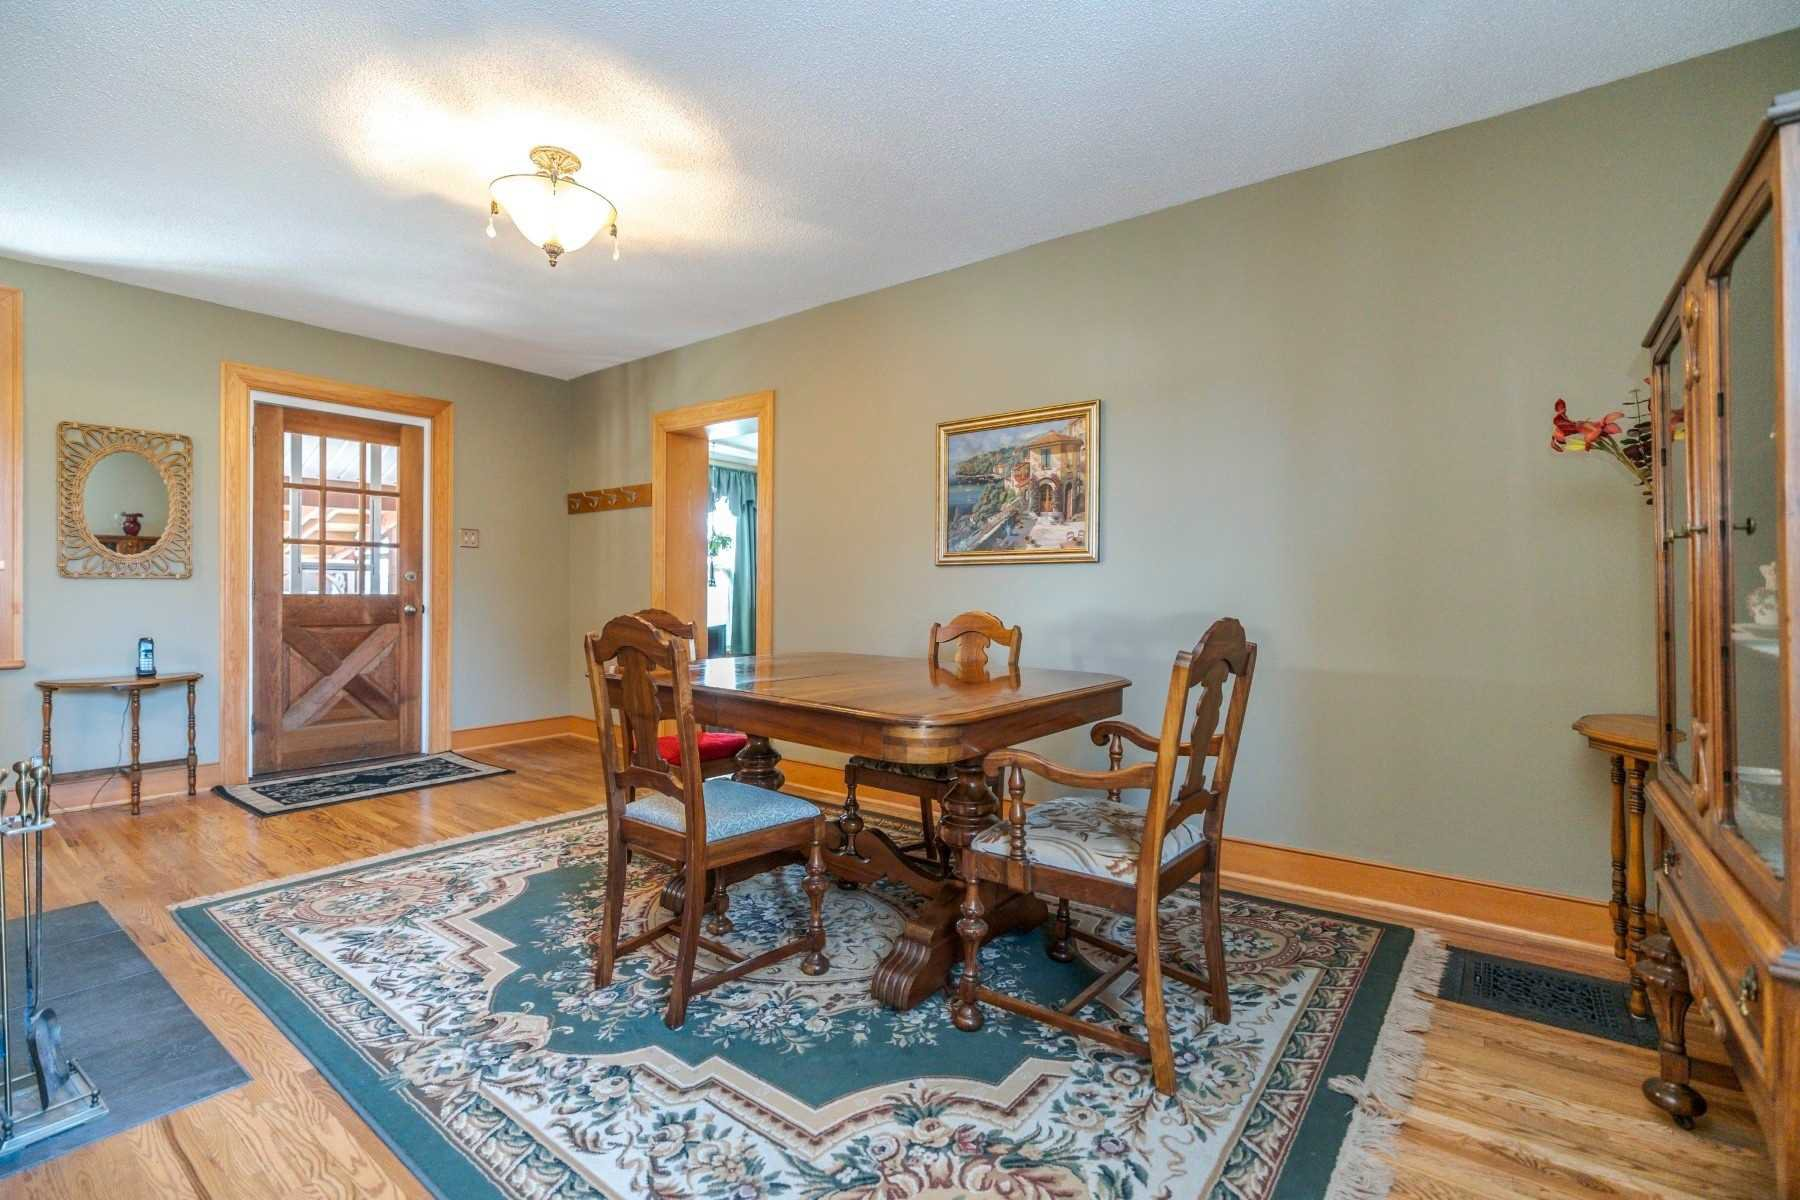 Photo 6: Photos: 1009 S Centre Street in Whitby: Downtown Whitby House (Bungalow) for sale : MLS®# E4714116